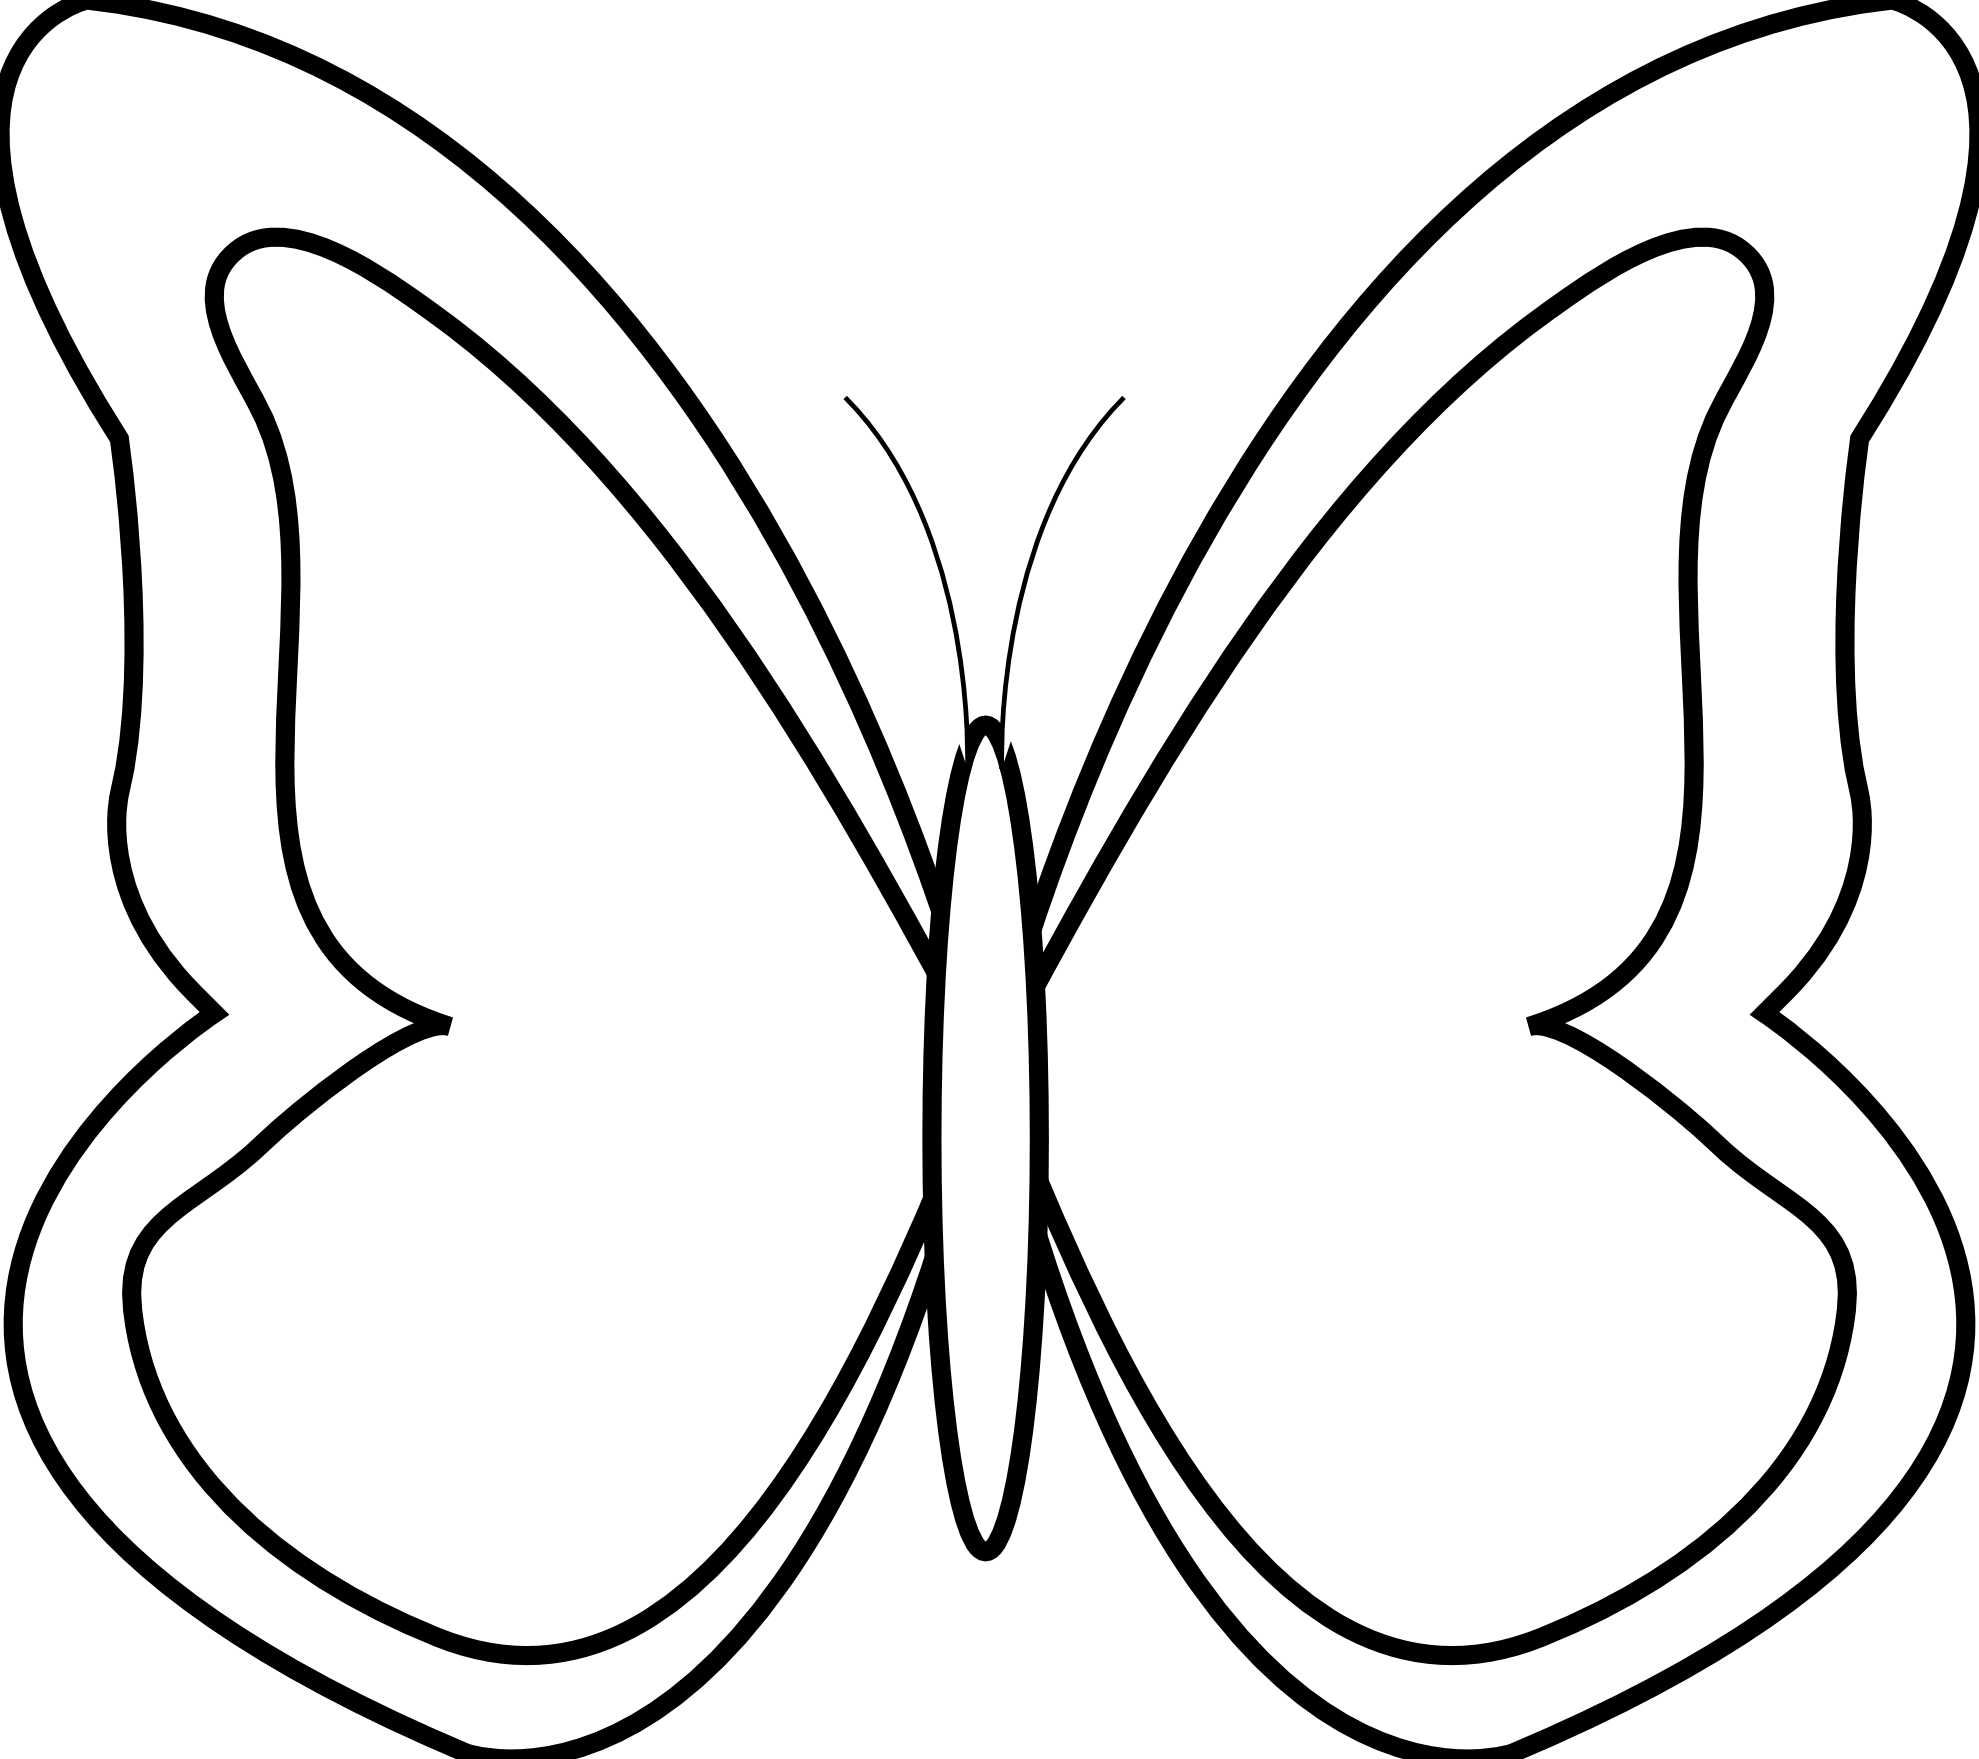 Yogurt clipart cute. Butterfly net panda free